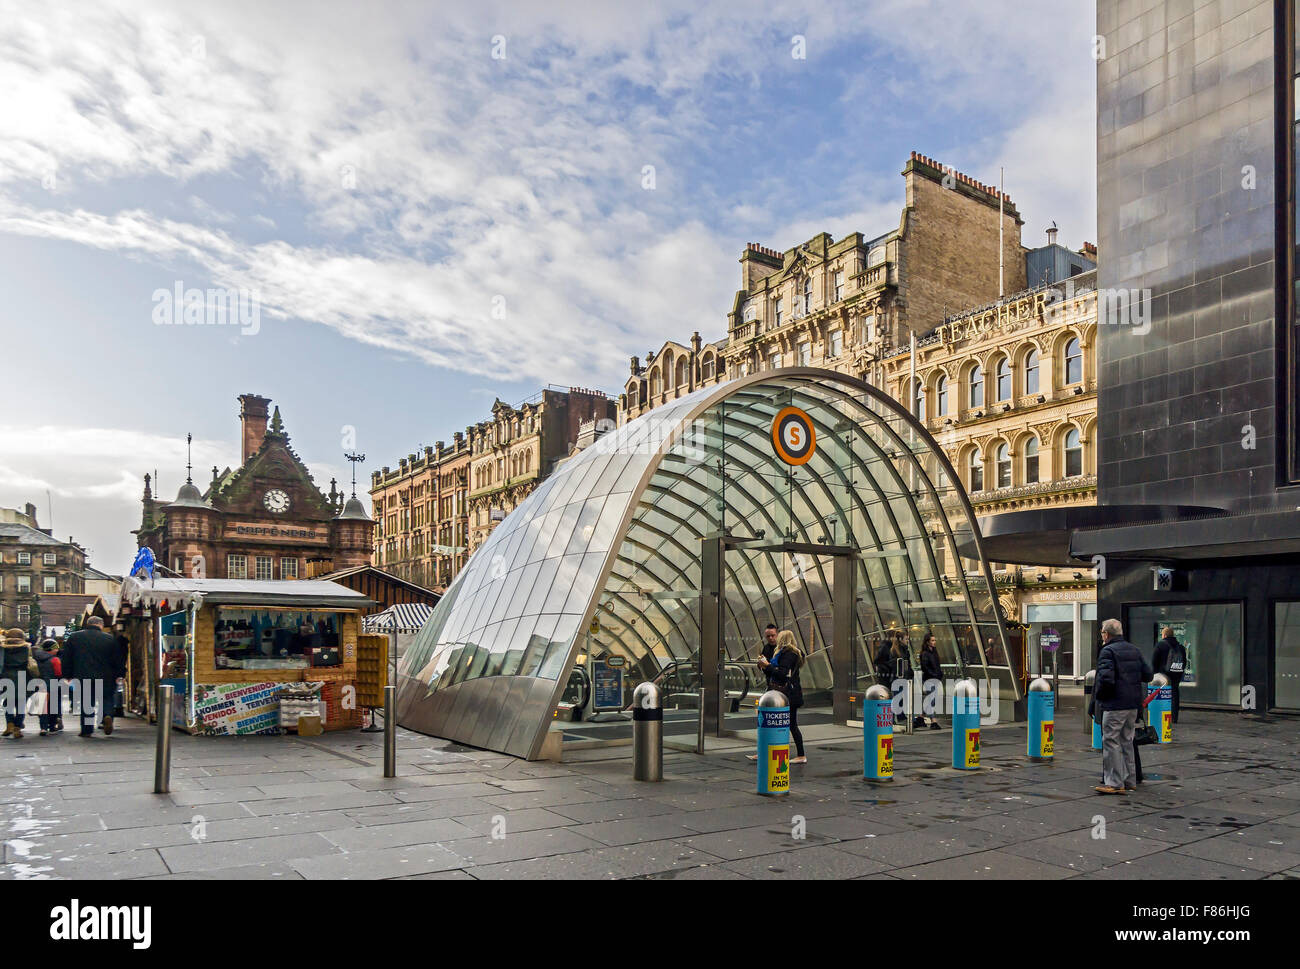 Glasgow Xmas market December 2015 in St. Enoch Square Glasgow Scotland with Subway entrance right - Stock Image